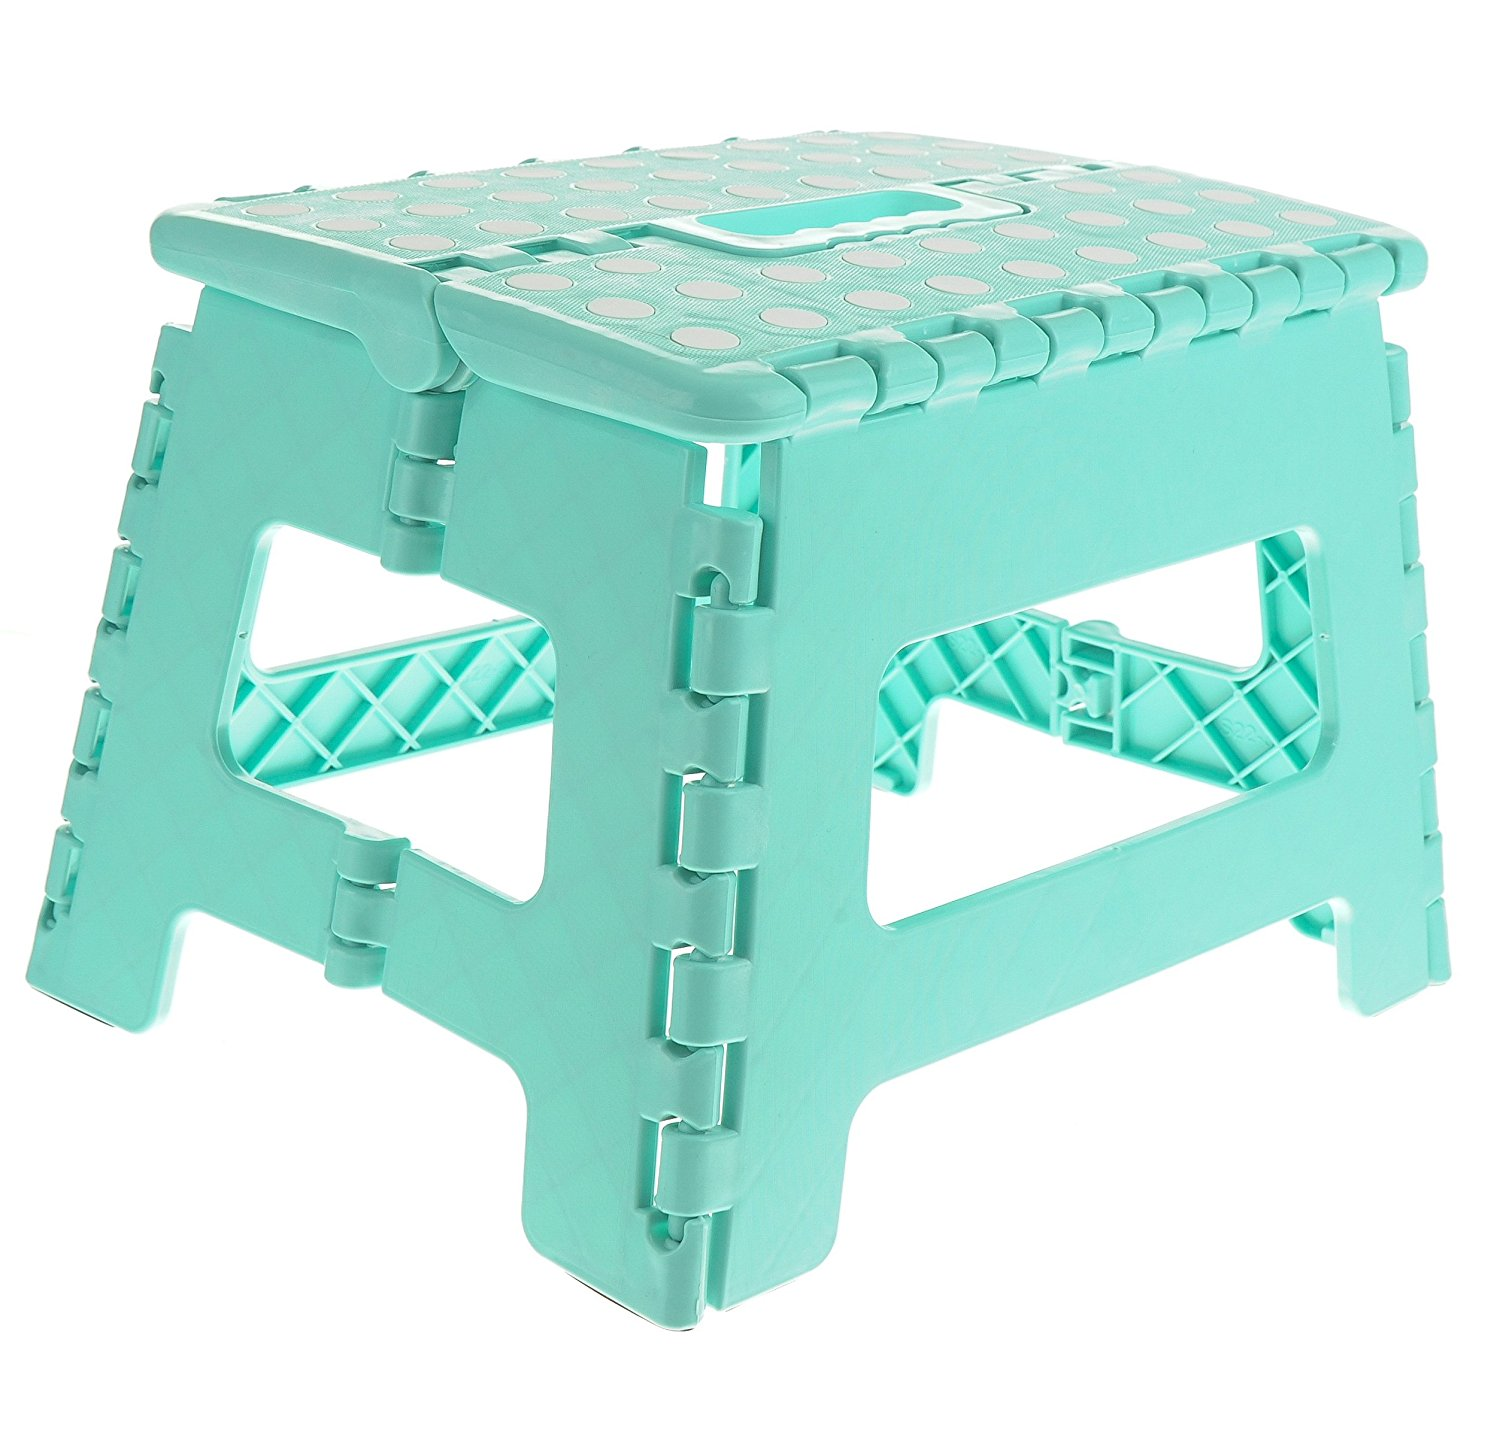 Cheap Step Stool Bedroom, find Step Stool Bedroom deals on line at ...